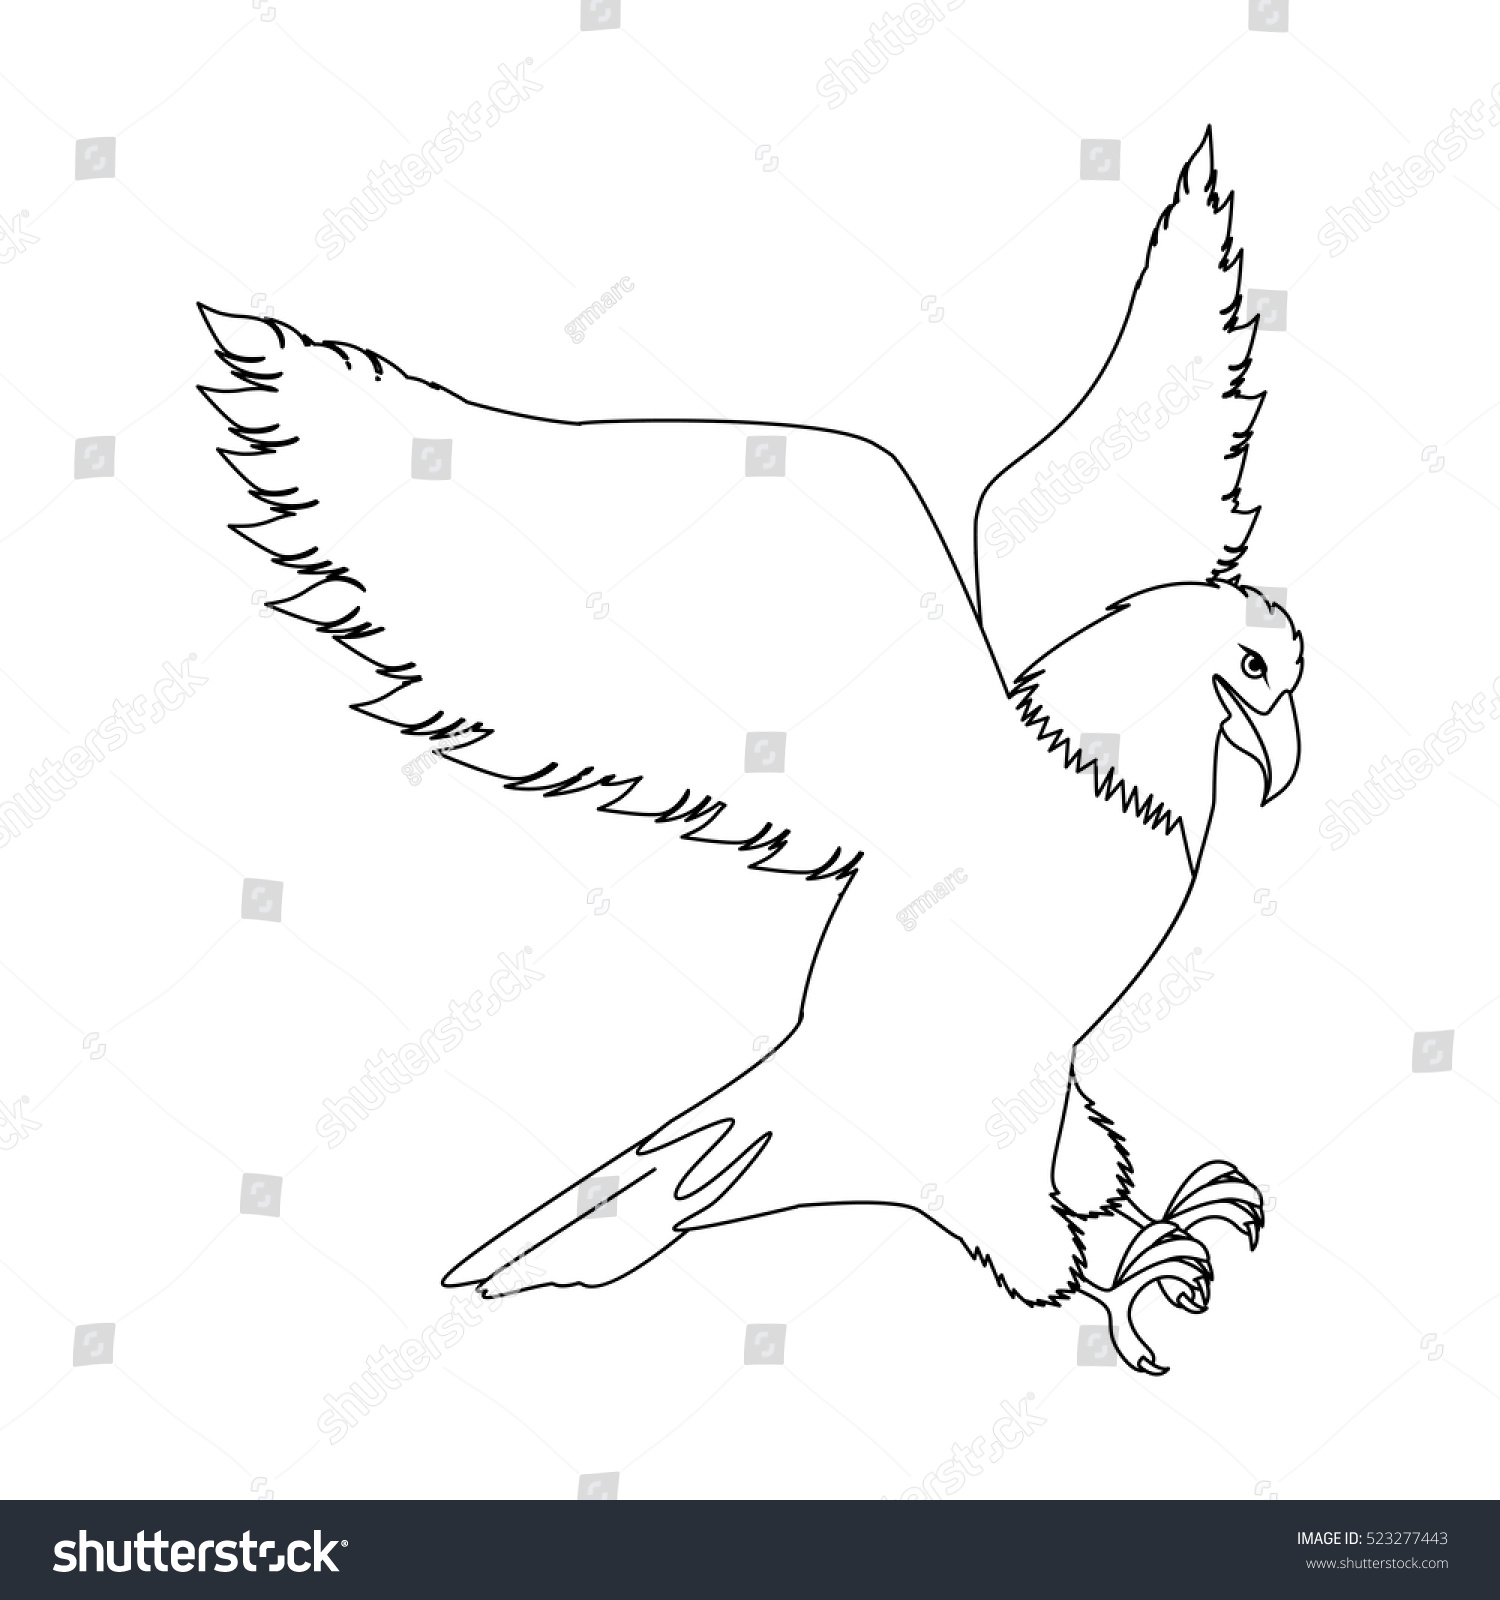 Cute Sports Car Coloring Pages Big Position Coloring Book Flat Bun B Coloring Book Doodle Coloring Book Youthful Book Of Colors FreshColor Swatch Book Contour Eagle Hunting Position Stock Vector 523277443   Shutterstock